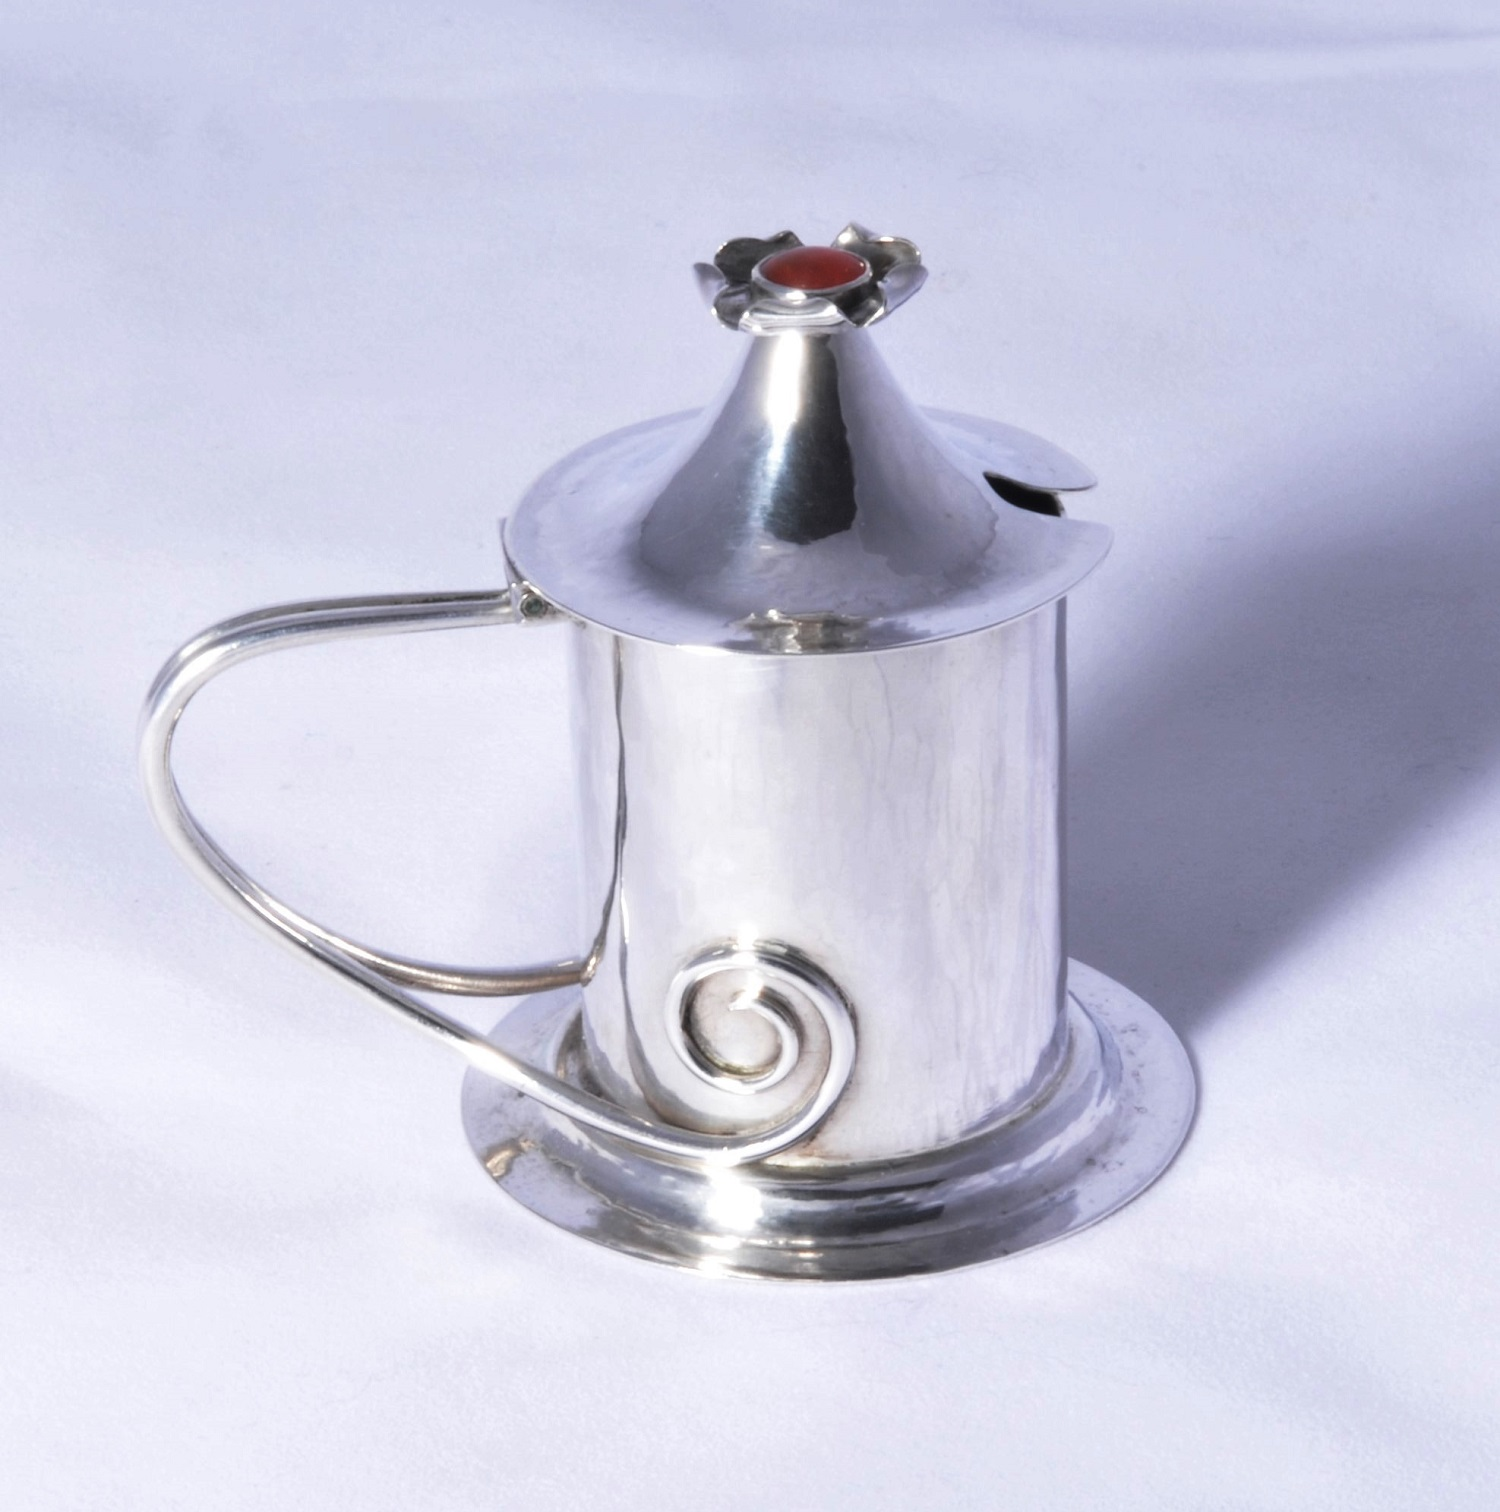 Charles Ashbee Guild of Handicraft silver mustard